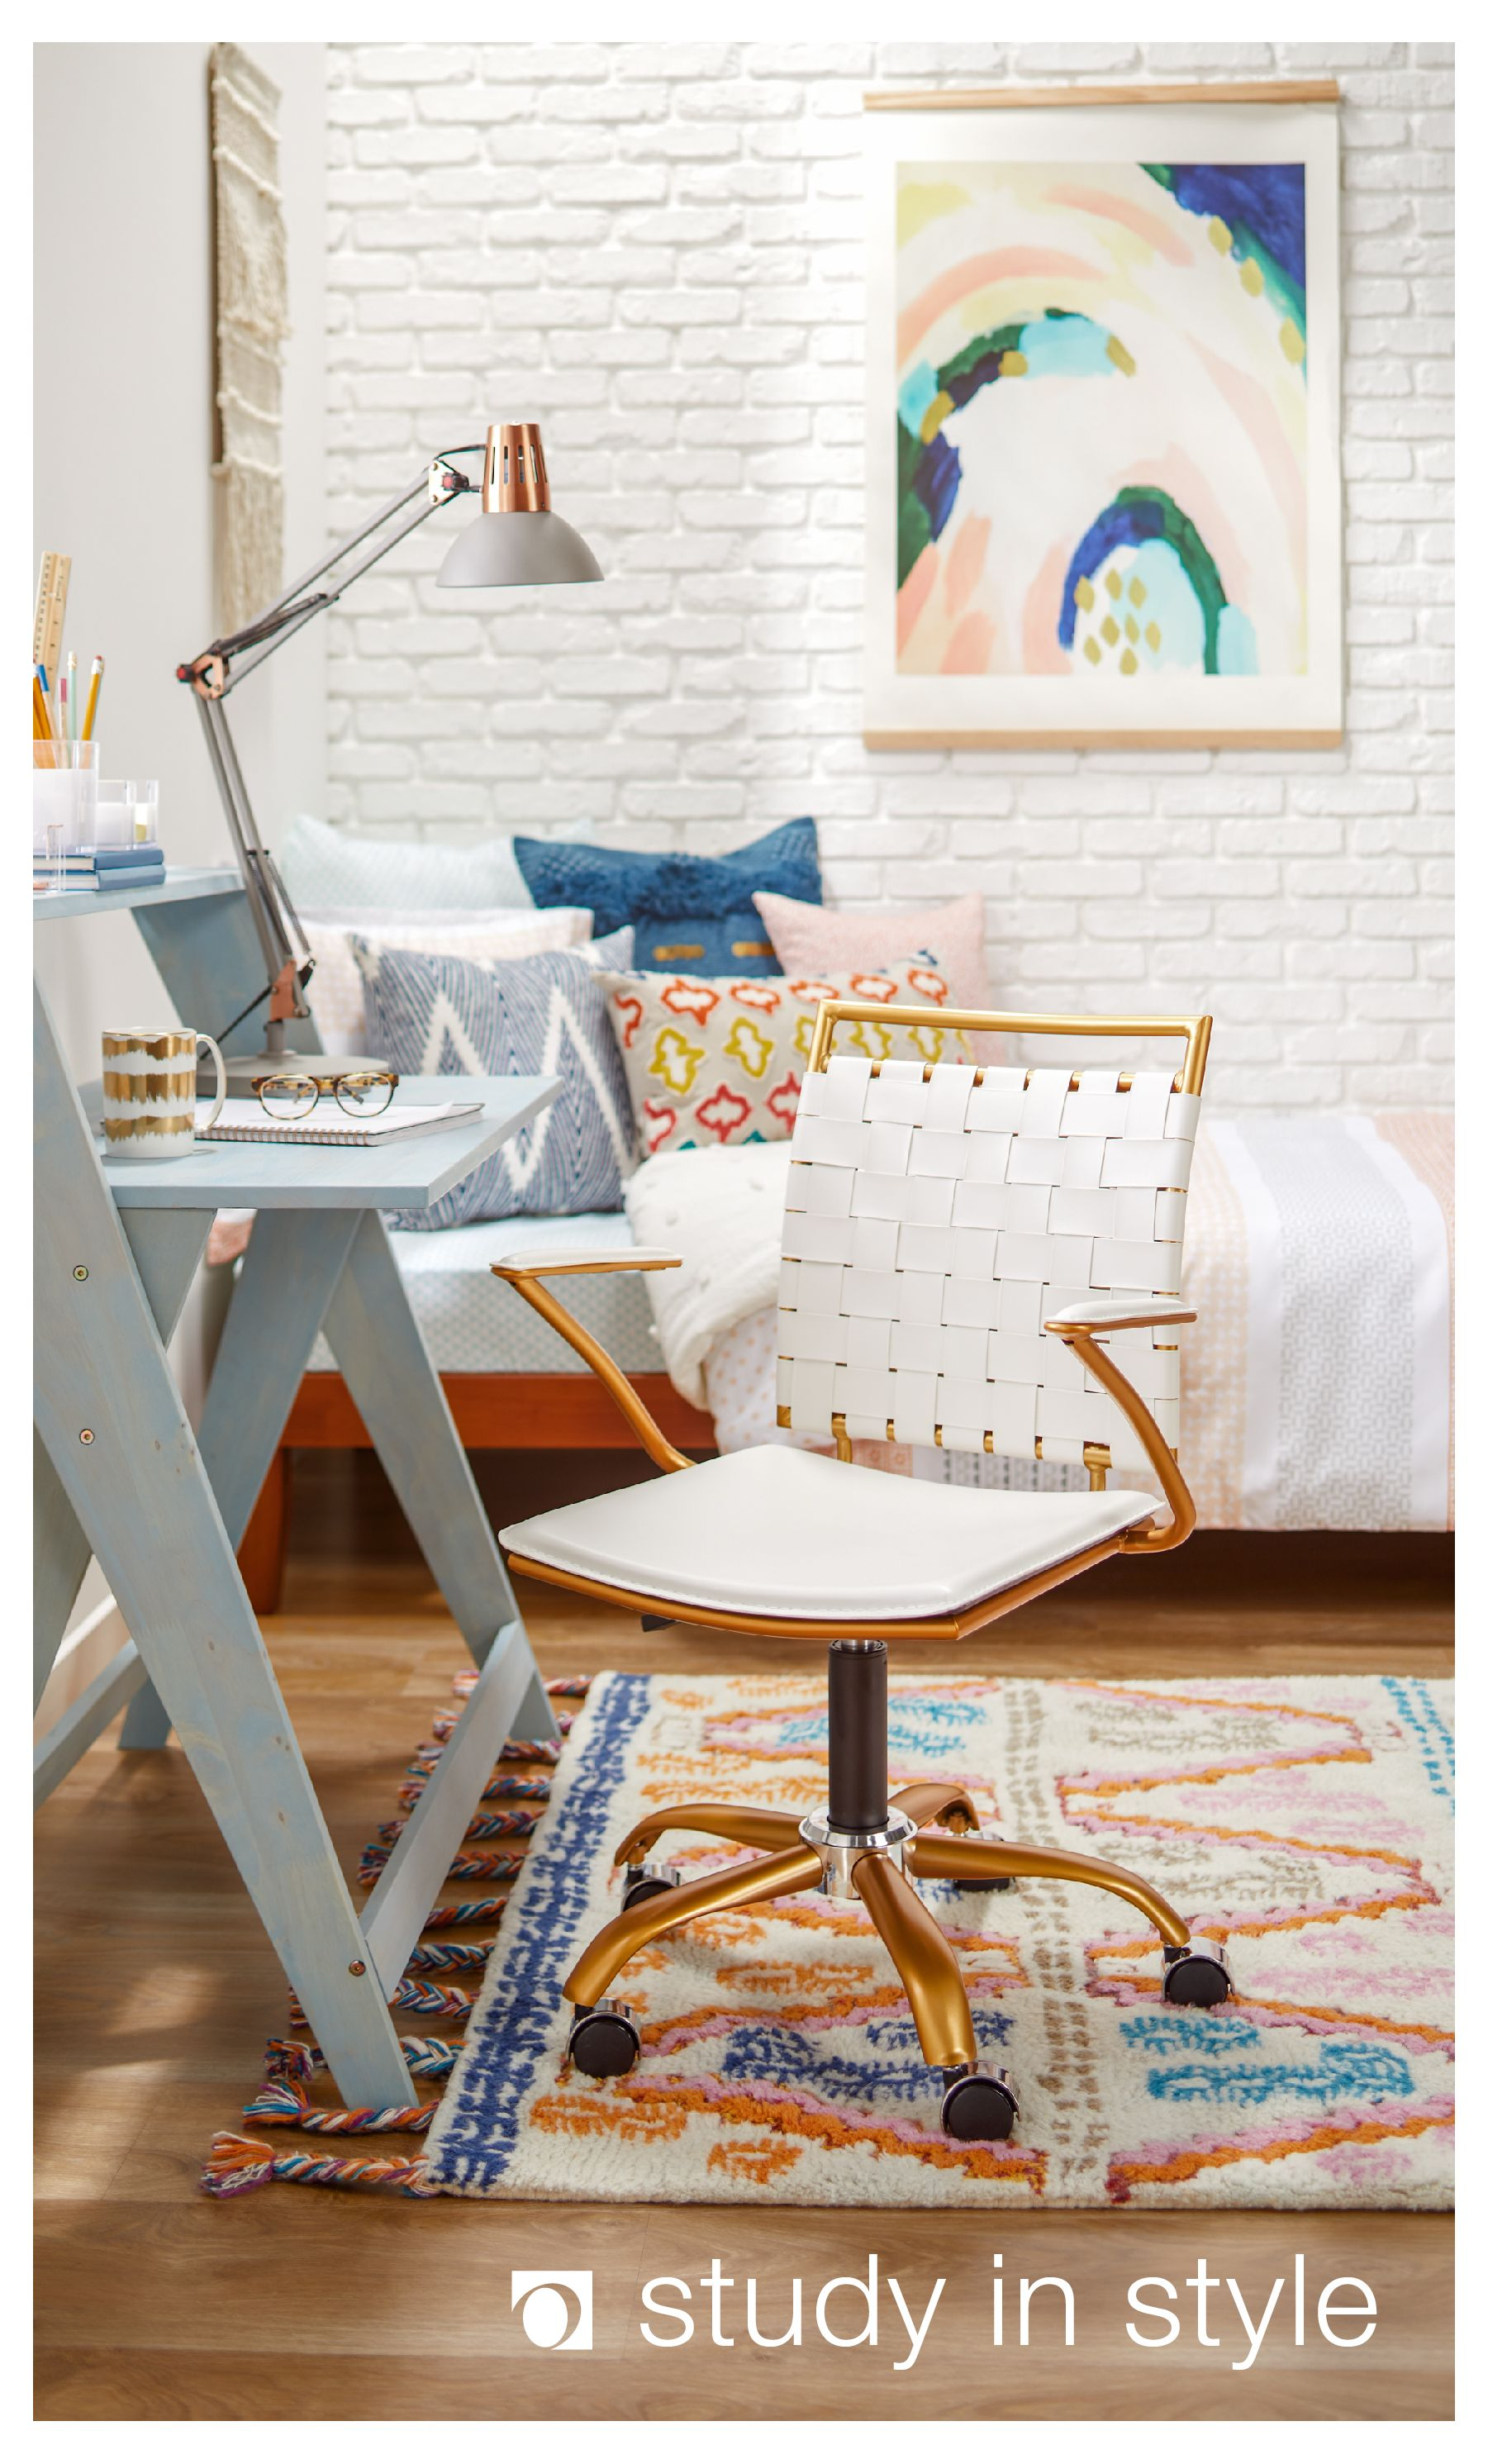 Design Your Own Dorm Room: Must-Have College Dorm Room Essentials